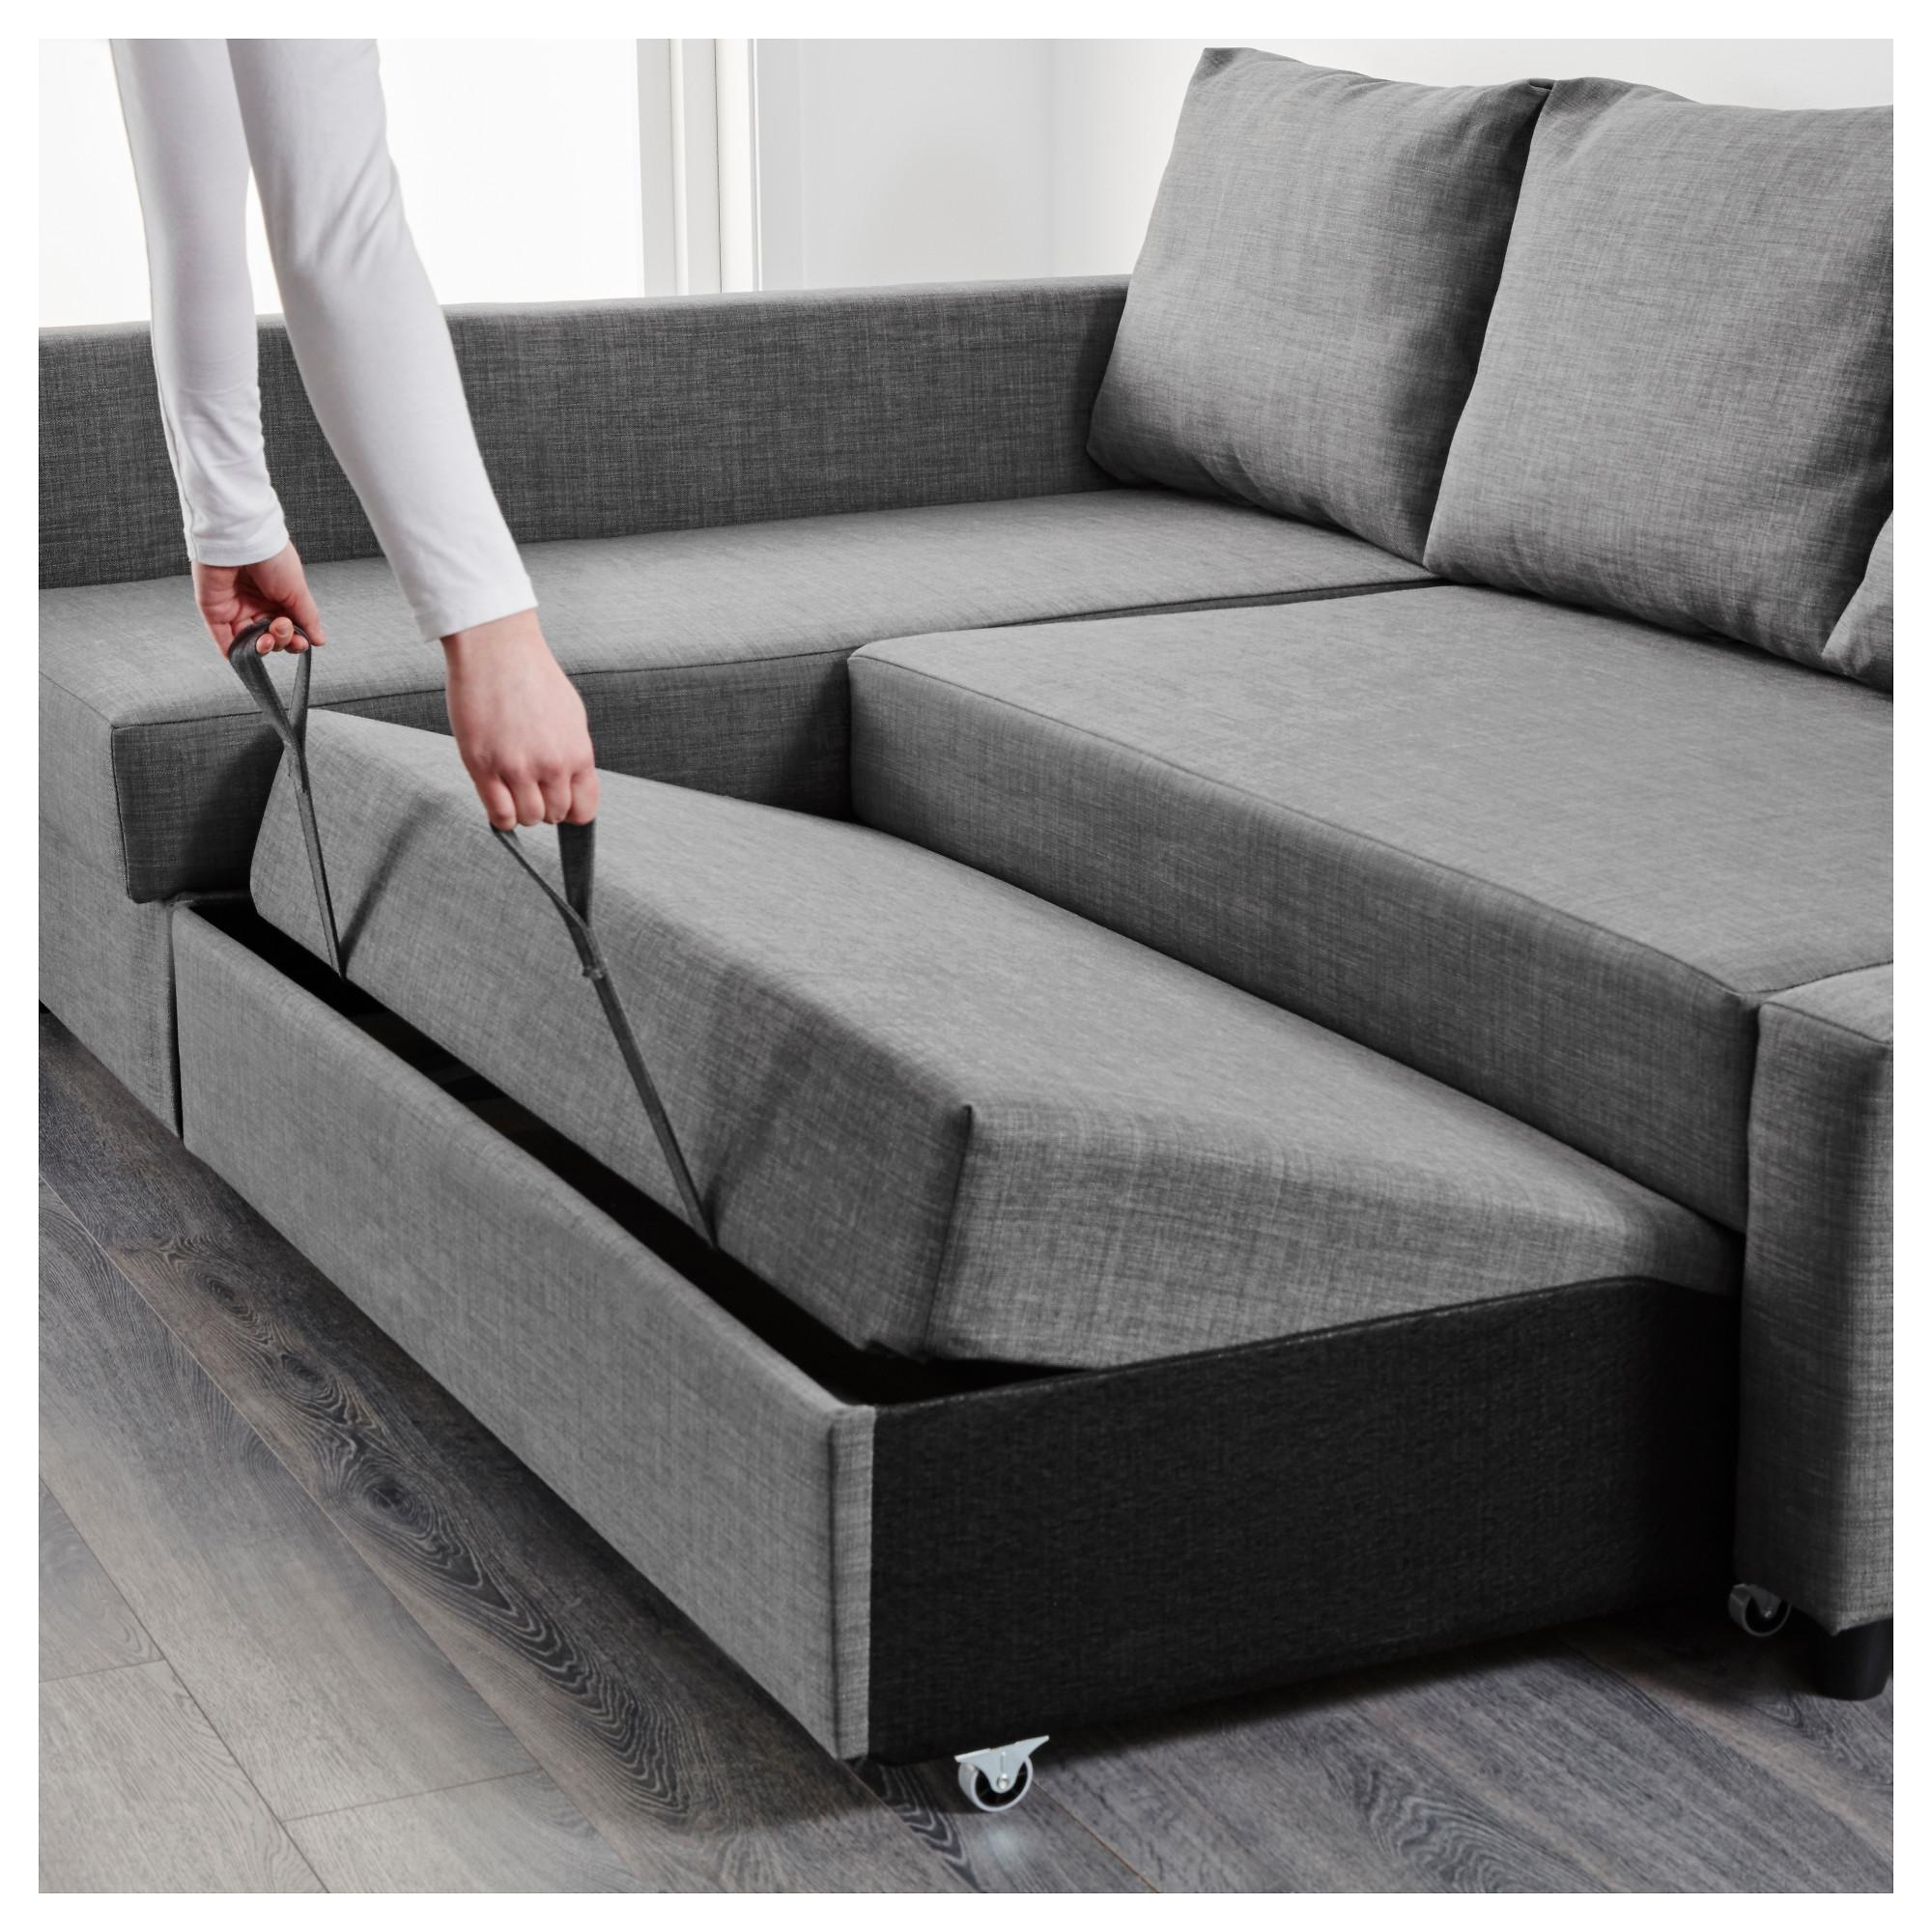 Friheten Corner Sofa Bed With Storage Skiftebo Dark Grey – Ikea With Regard To Ikea Single Sofa Beds (View 18 of 23)